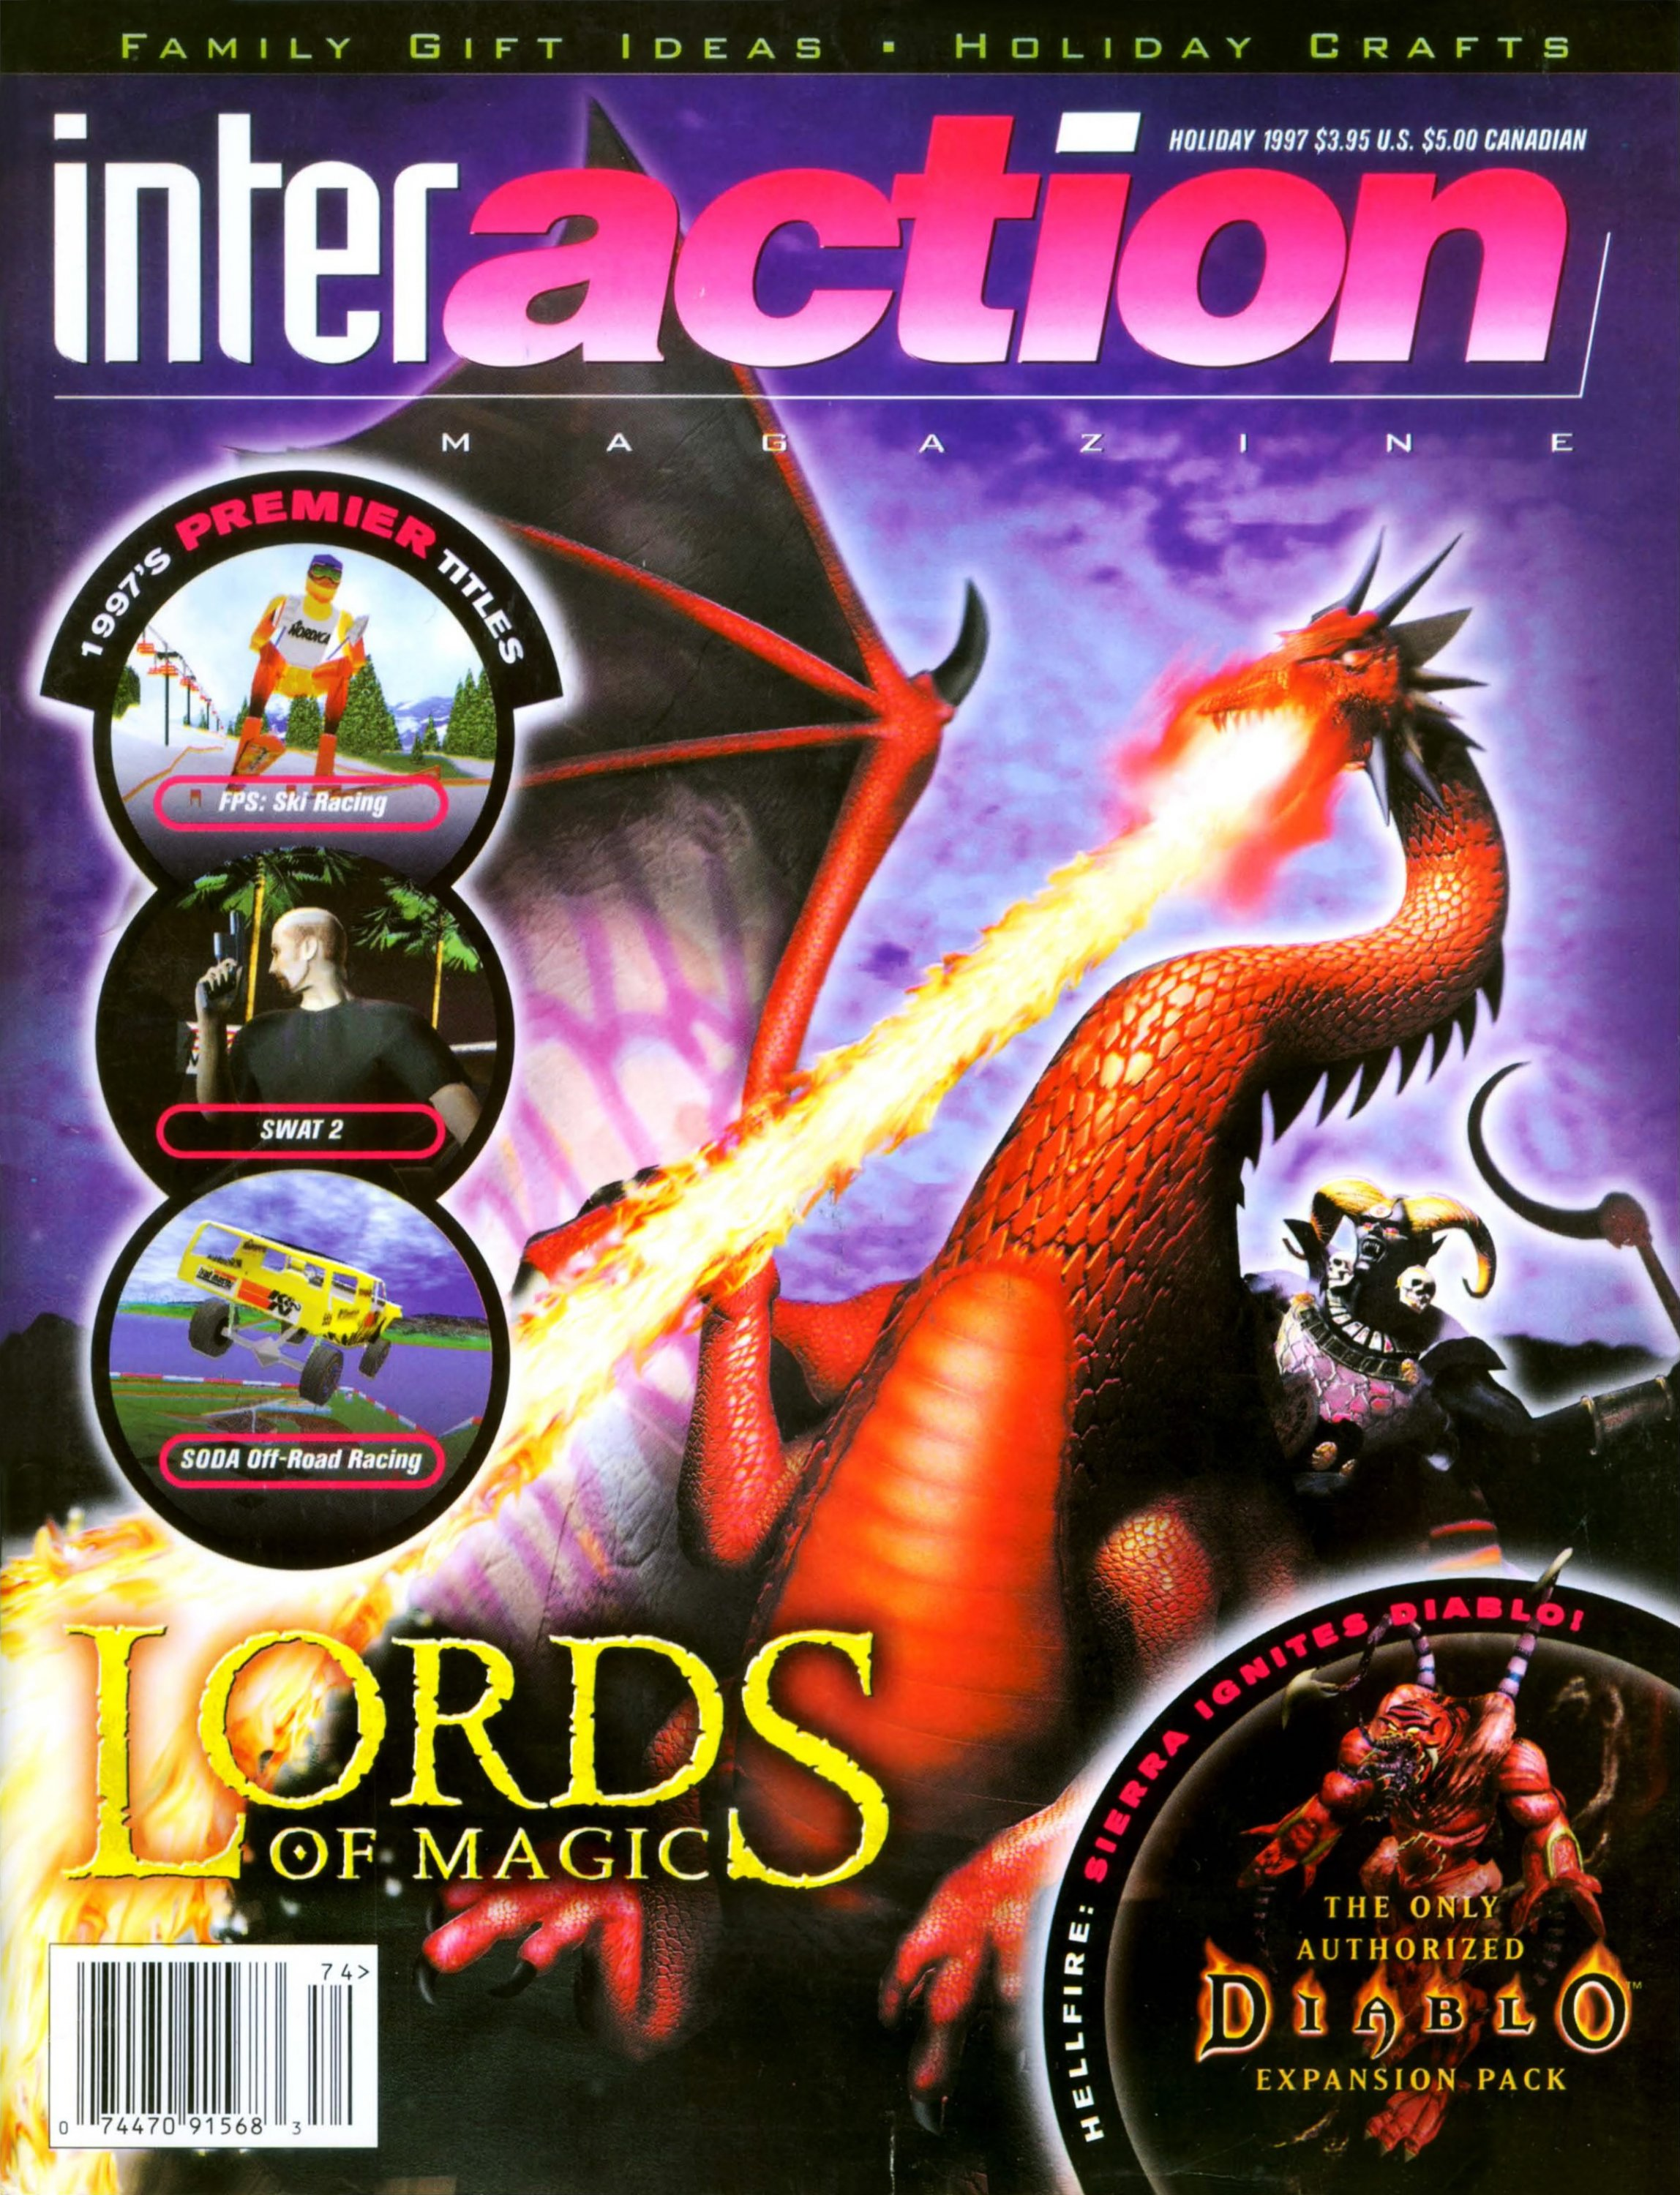 InterAction Issue 33 (Volume 10 Number 4) Holiday 1997